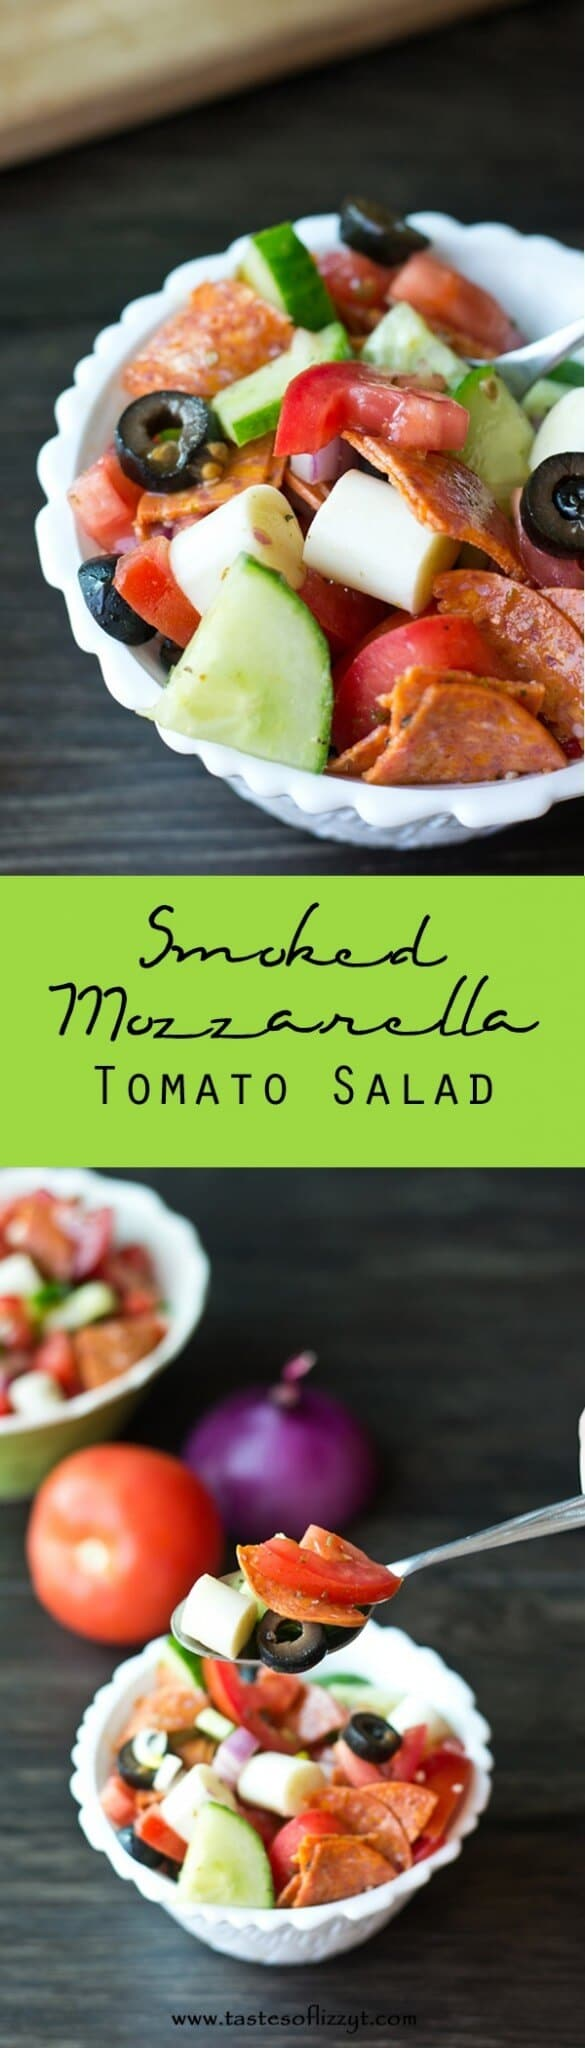 Smoked Mozzarella Tomato Salad {Easy Weight Watchers Summer Lunch Recipe} Smoked Mozzarella Tomato Salad is a healthy side dish combining the flavors of pepperoni, garlic, red onion, red wine vinegar and smoked mozzarella!